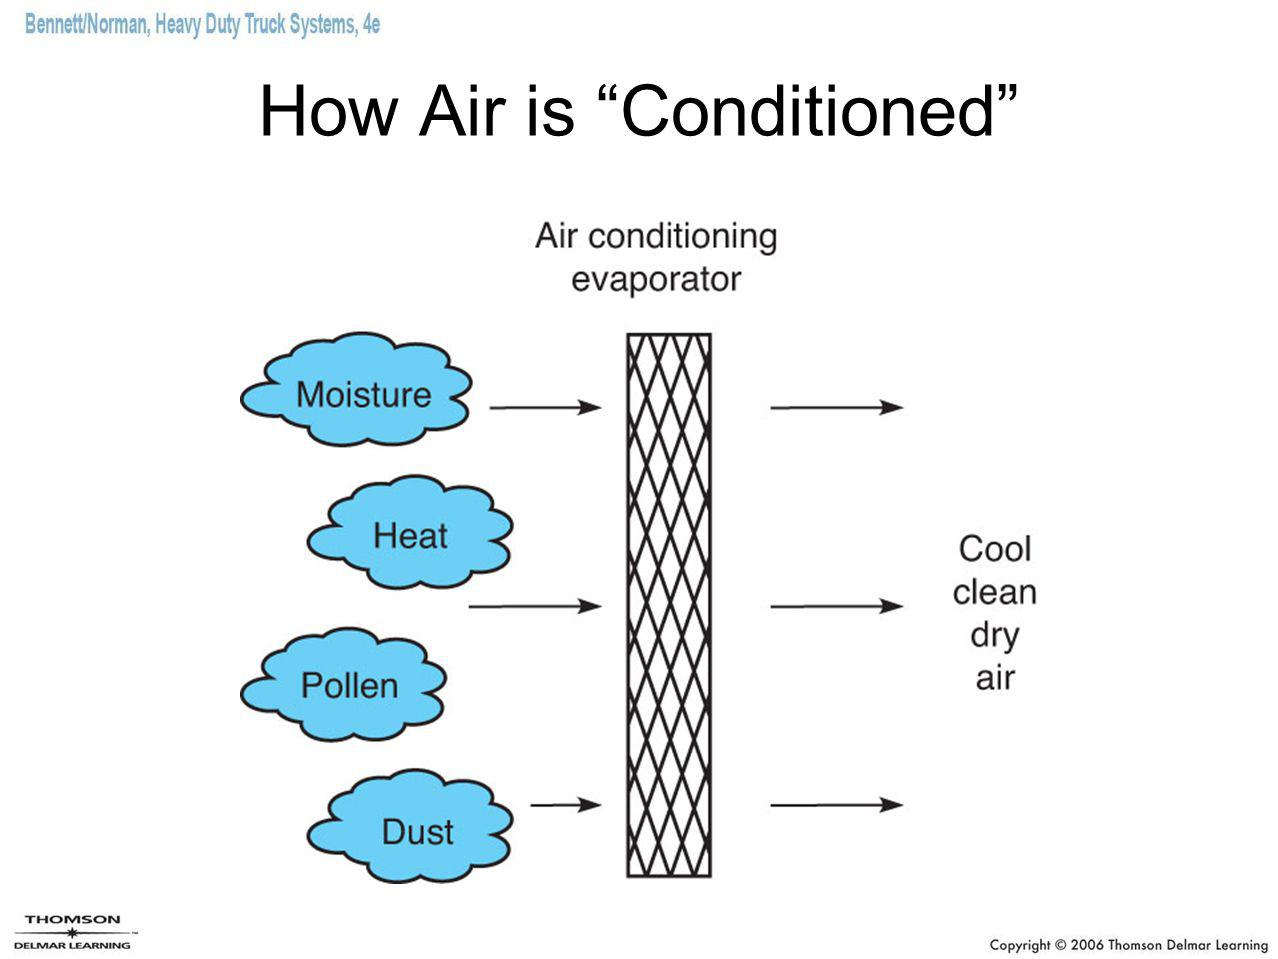 How Air is Conditioned